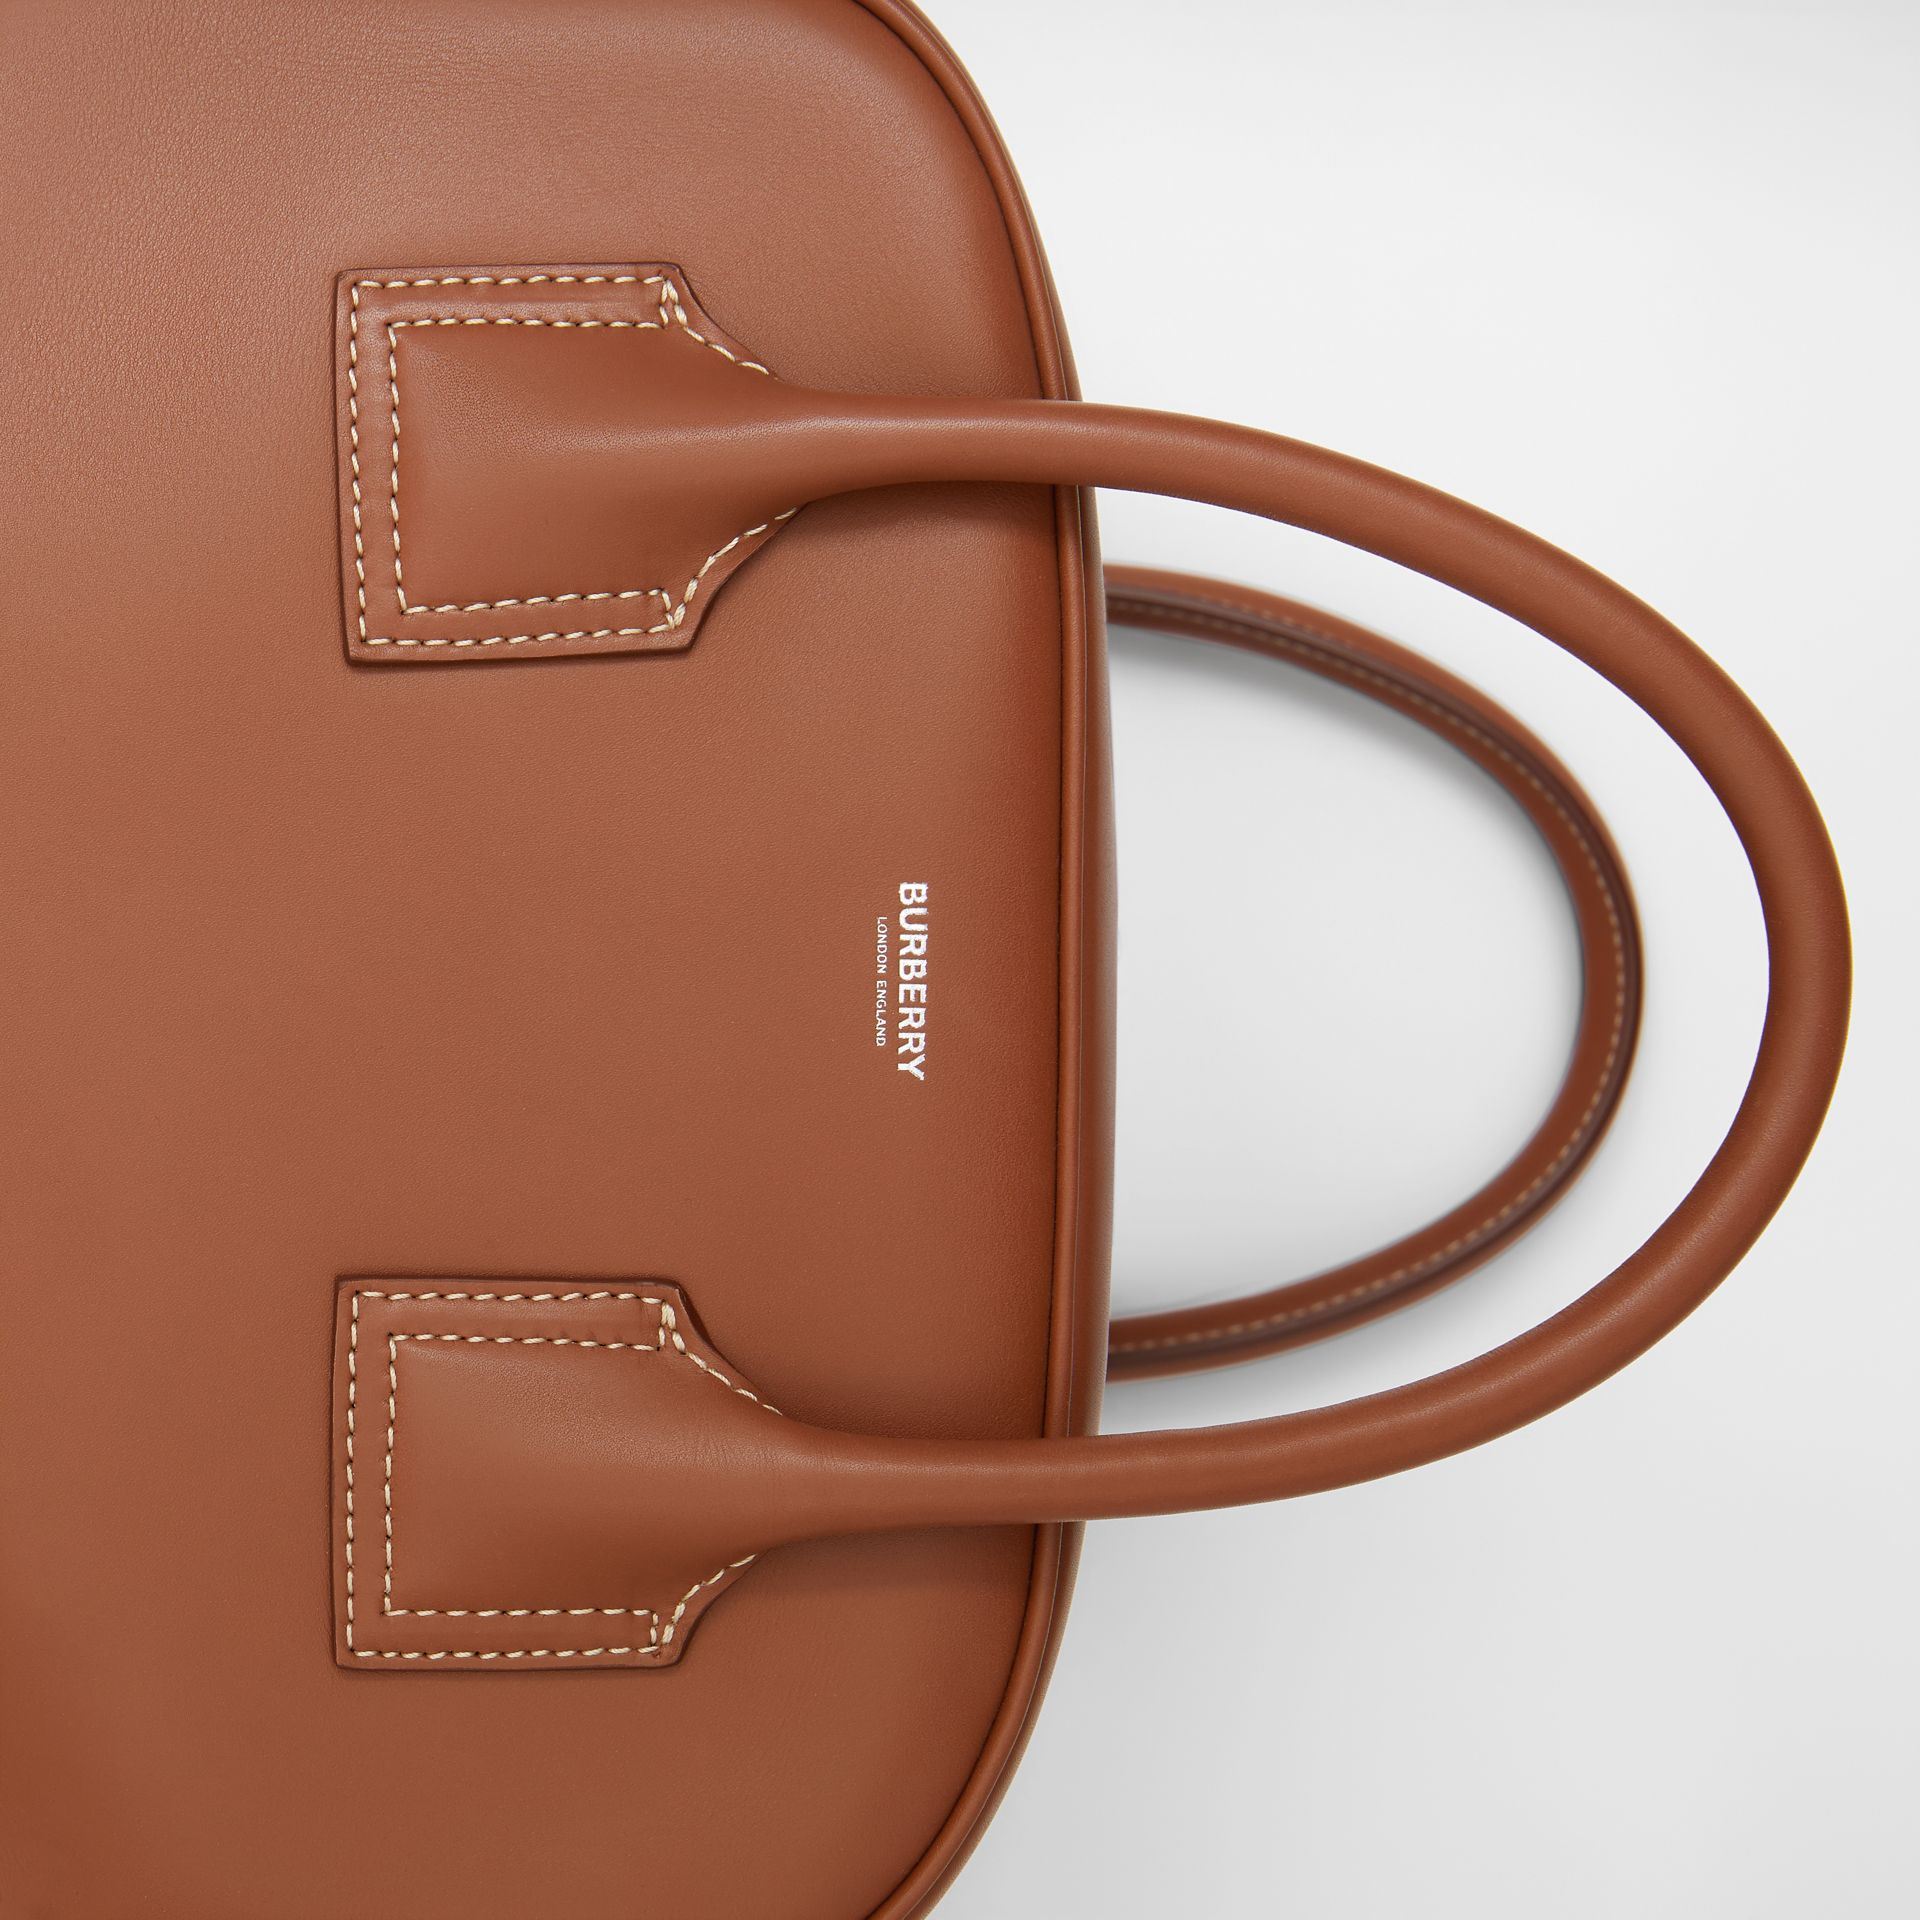 Medium Leather Cube Bag in Malt Brown - Women | Burberry United Kingdom - gallery image 1